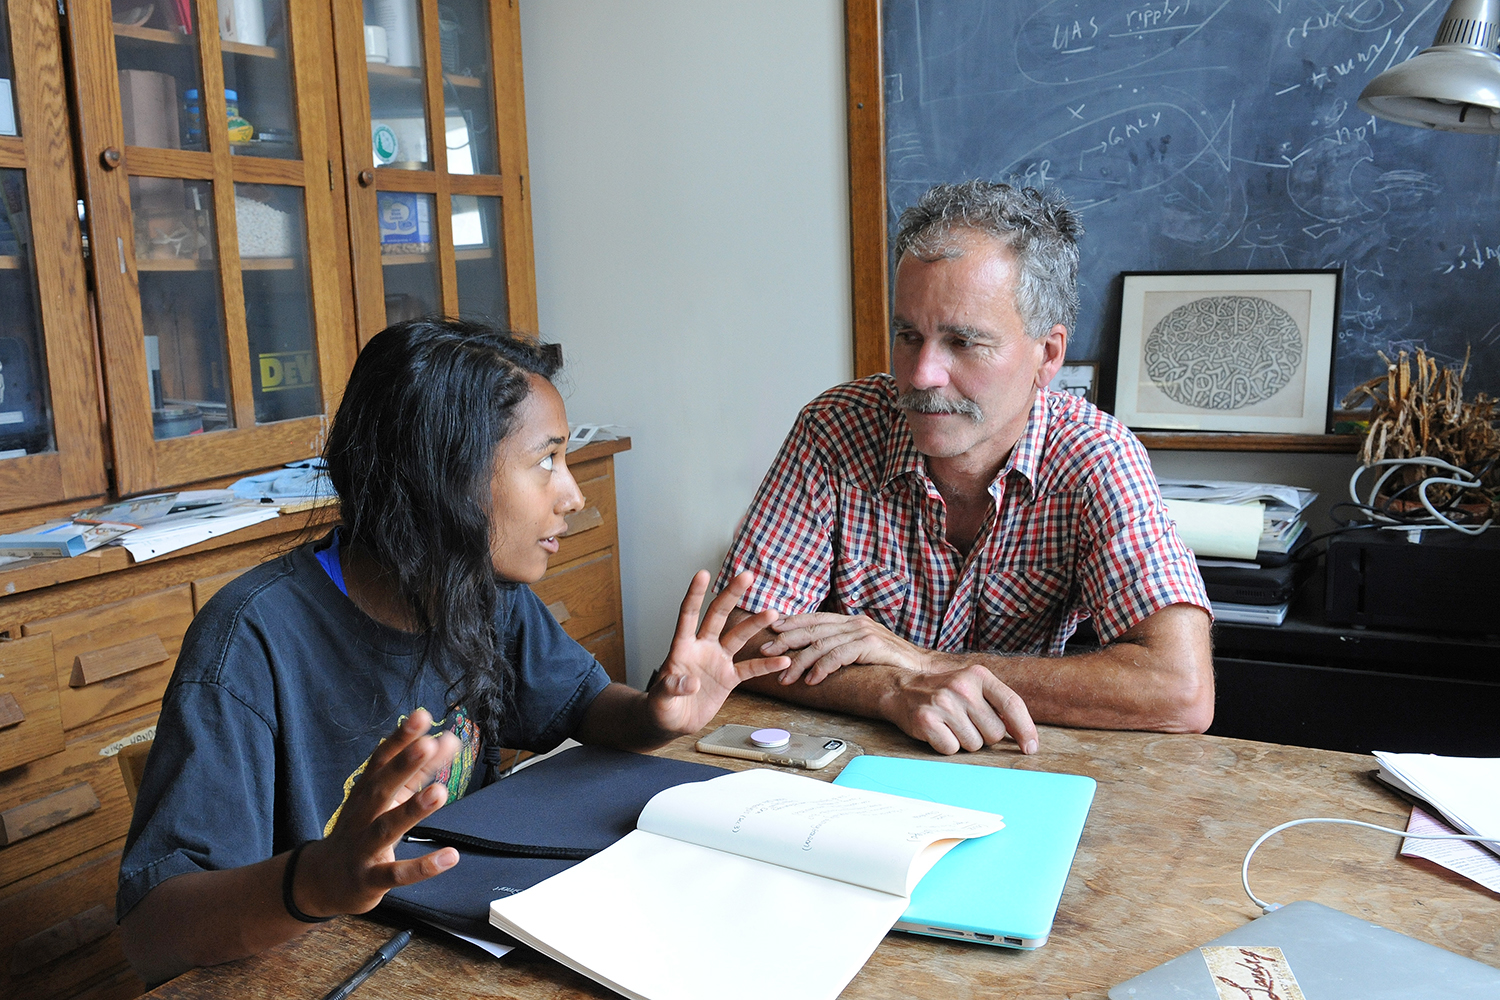 Stephen Devoto, professor of biology, professor of neuroscience and behavior, met with with Meghan Jain '19.